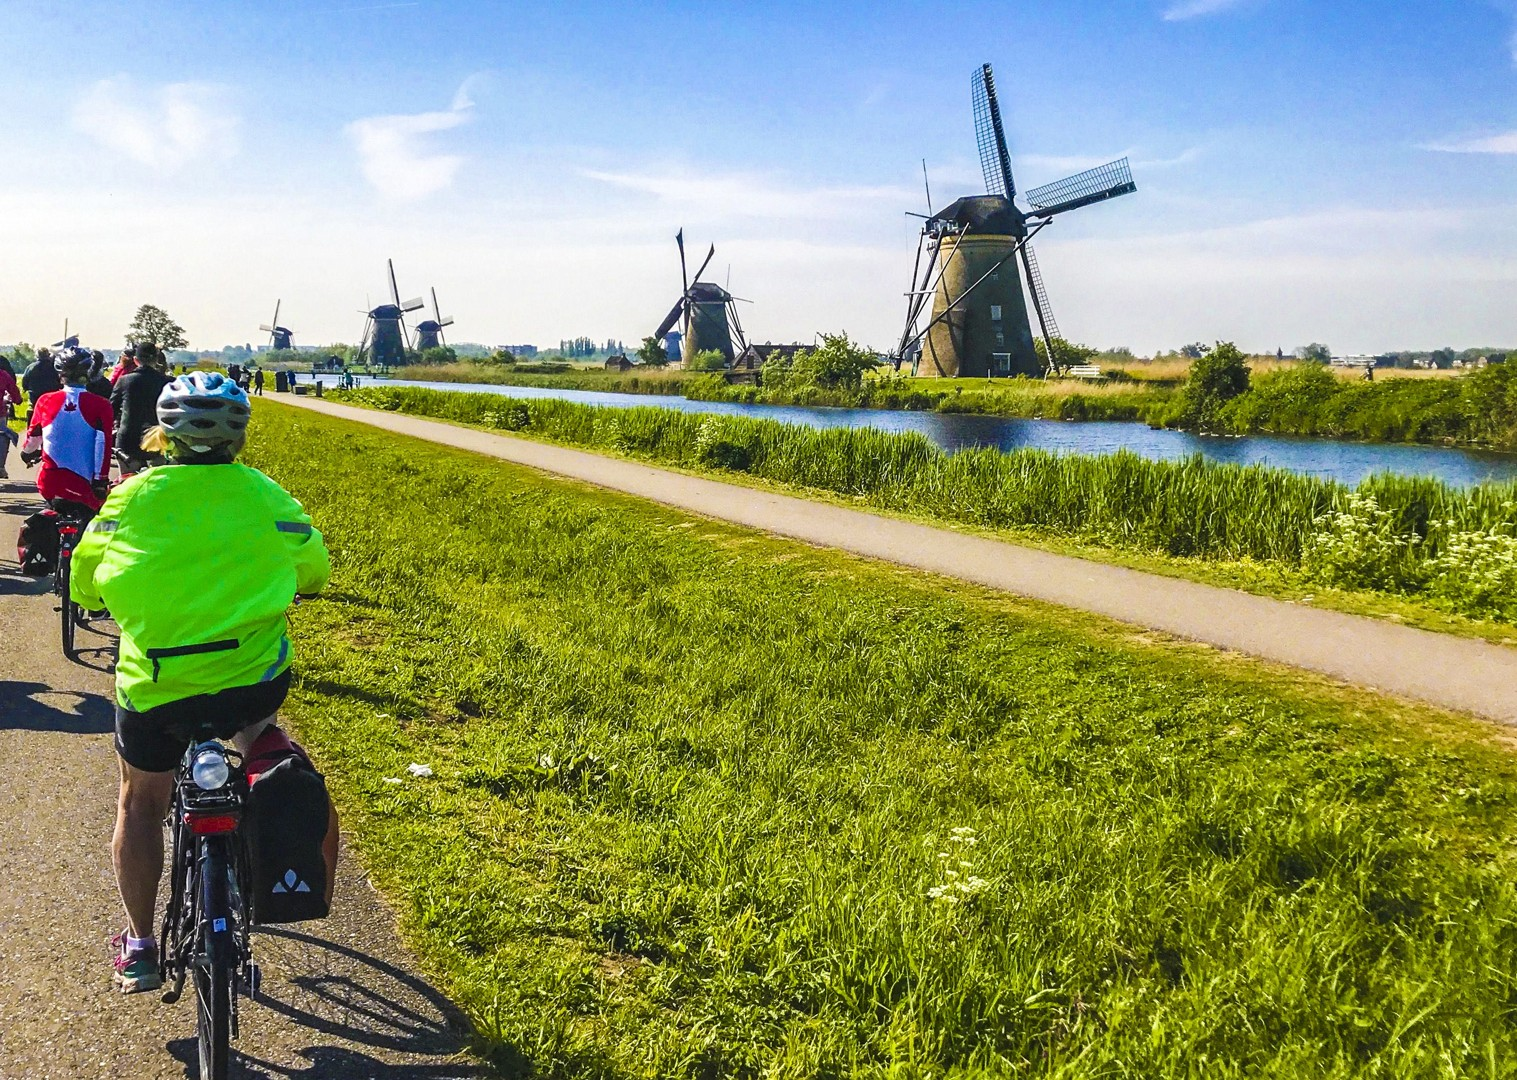 premium-cycling-tour-holland-kinderdijk-17th-century-culture-boat-accommodation.jpg - Holland and Belgium - Amsterdam to Bruges - Premium Bike and Barge Holiday - Leisure Cycling